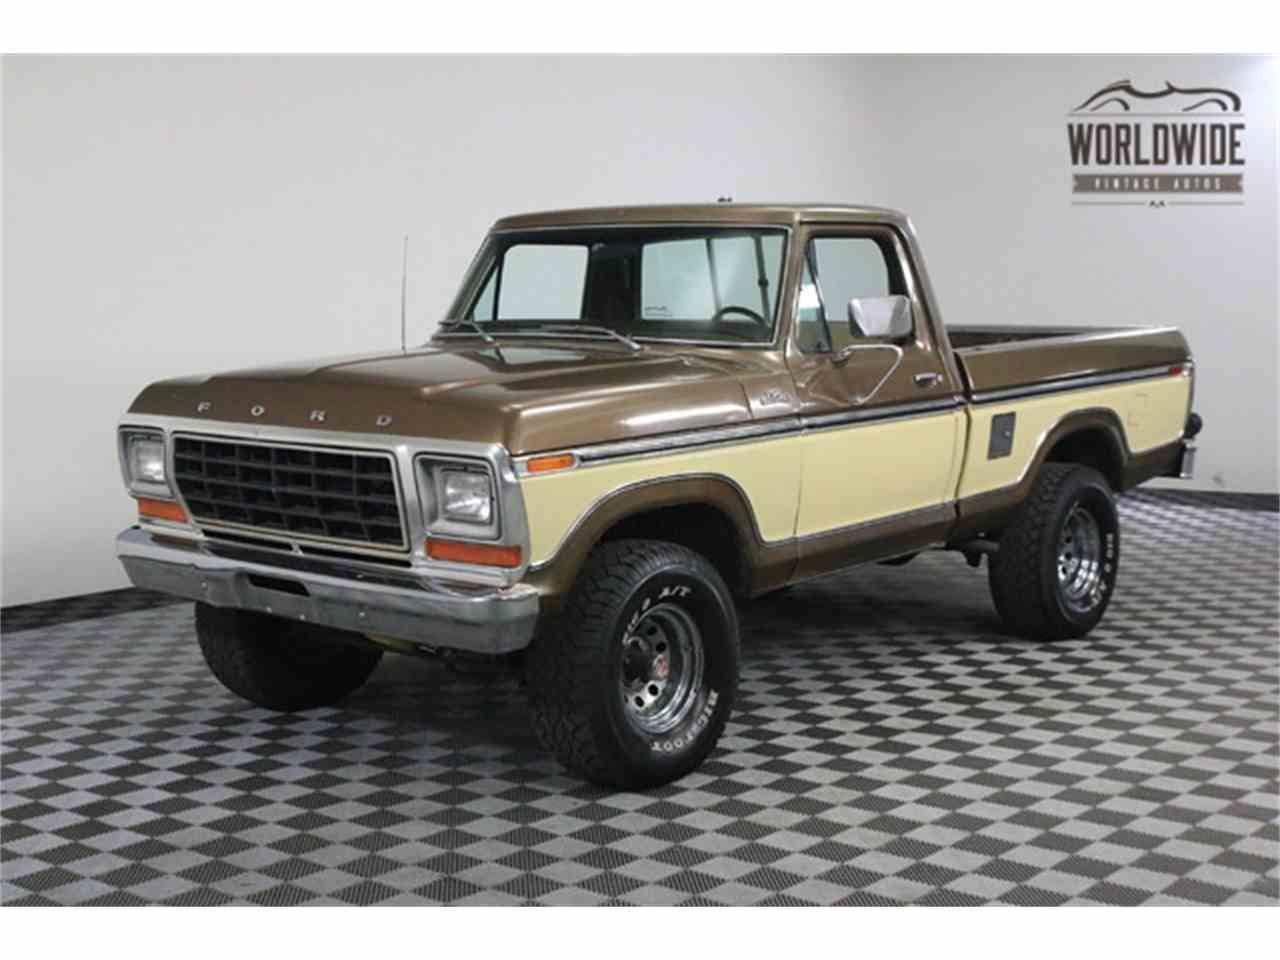 Classifieds For 1977 To 1979 Ford F150 14 Available Ford F150 1979 Ford F150 Classic Ford Trucks